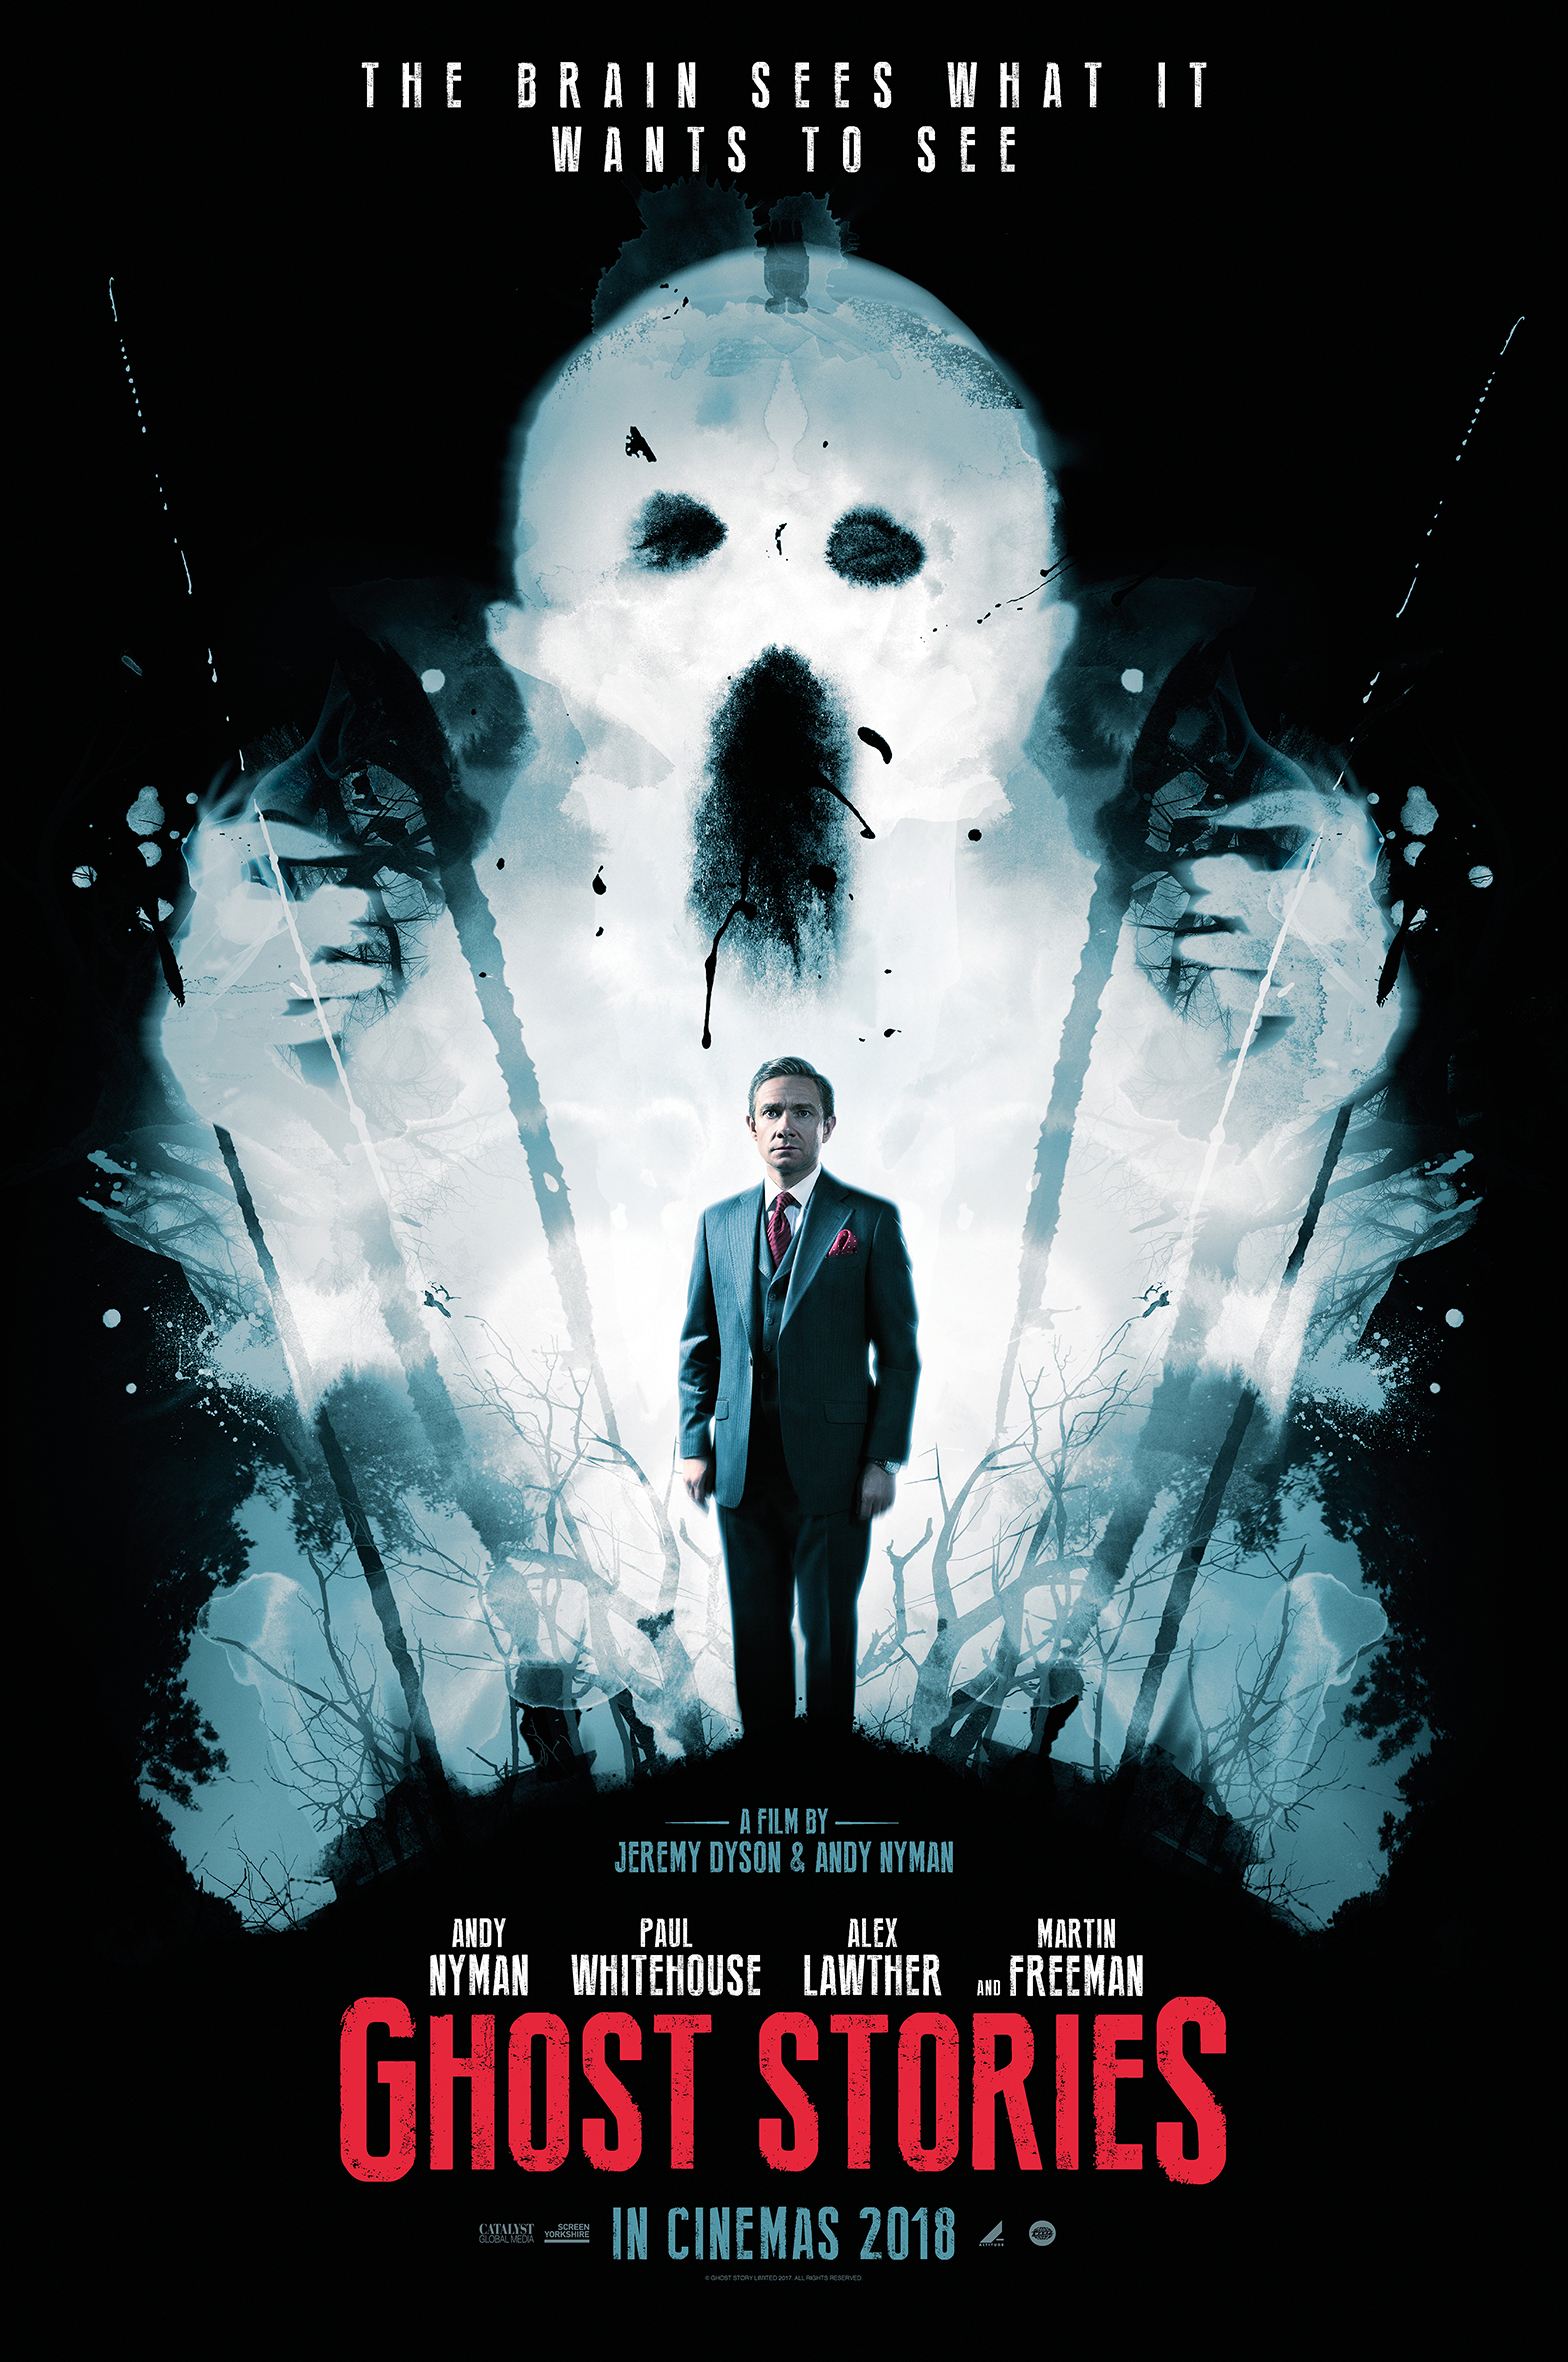 BUFF20 REVIEW: Ghost Stories (2017) dir  Jeremy Dyson & Andy